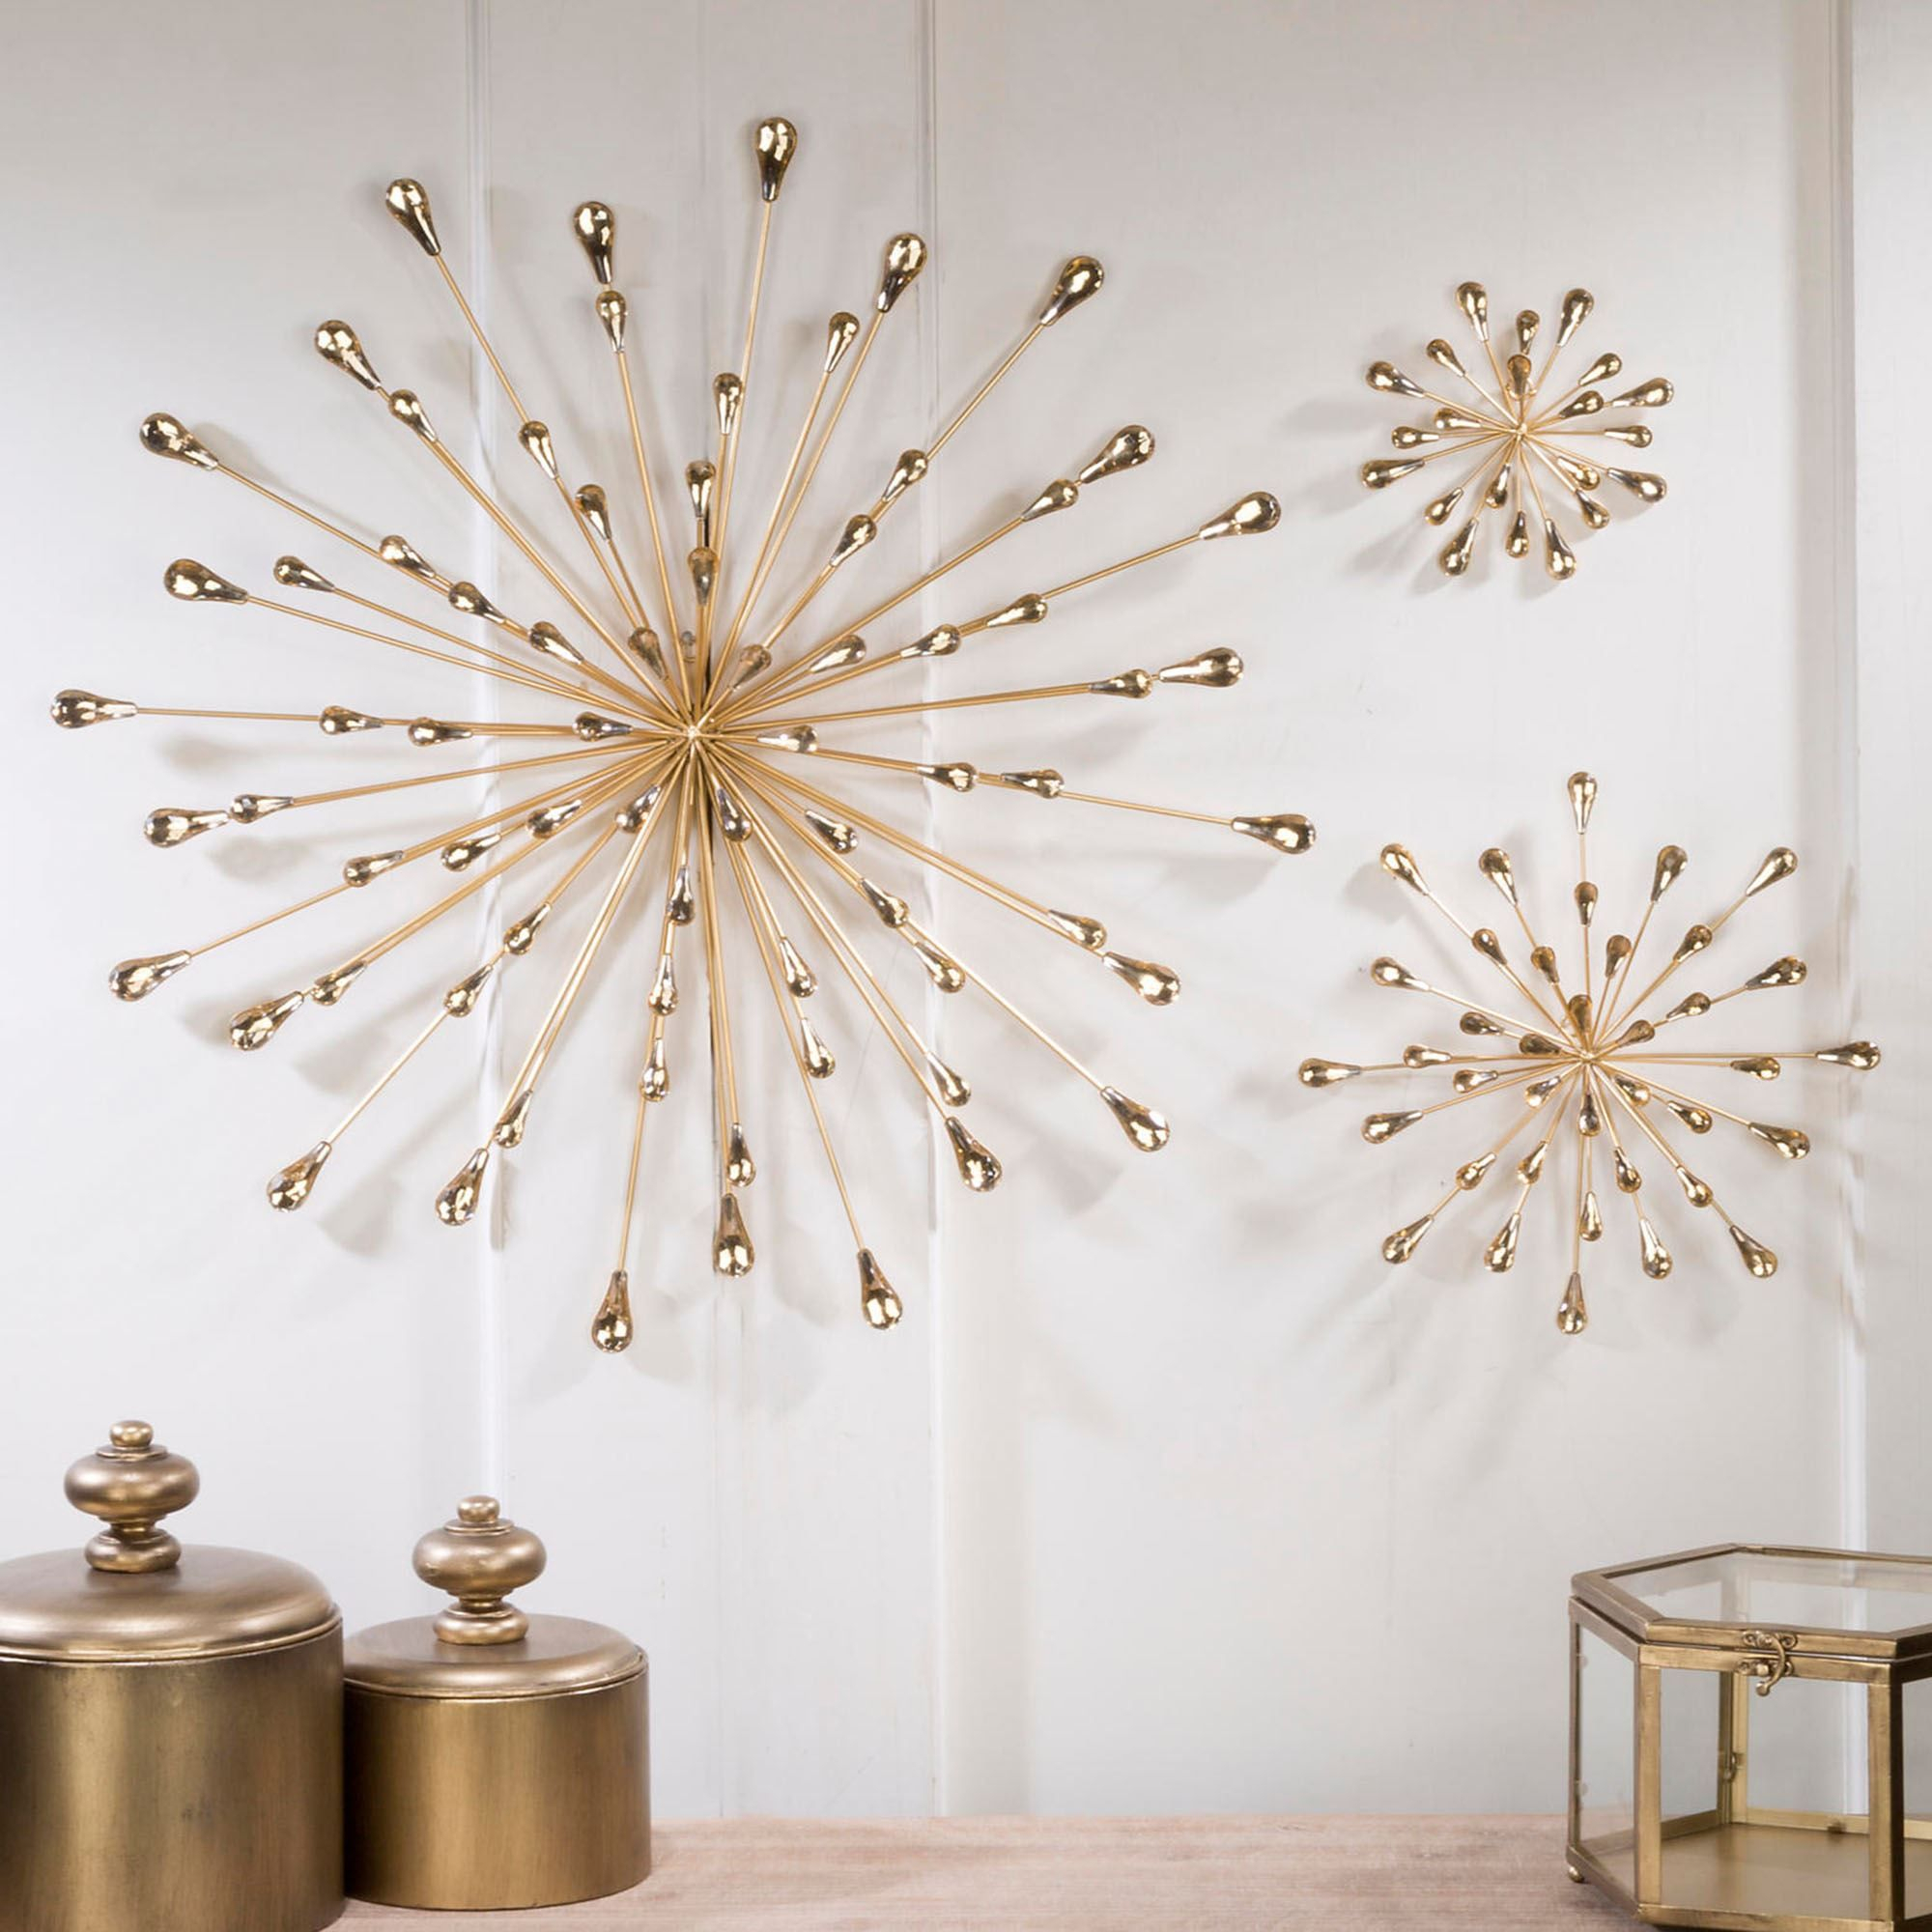 Jelena Gold Starburst Metal Wall Art | Projects In 2019 In Starburst Wall Decor By Willa Arlo Interiors (View 11 of 30)